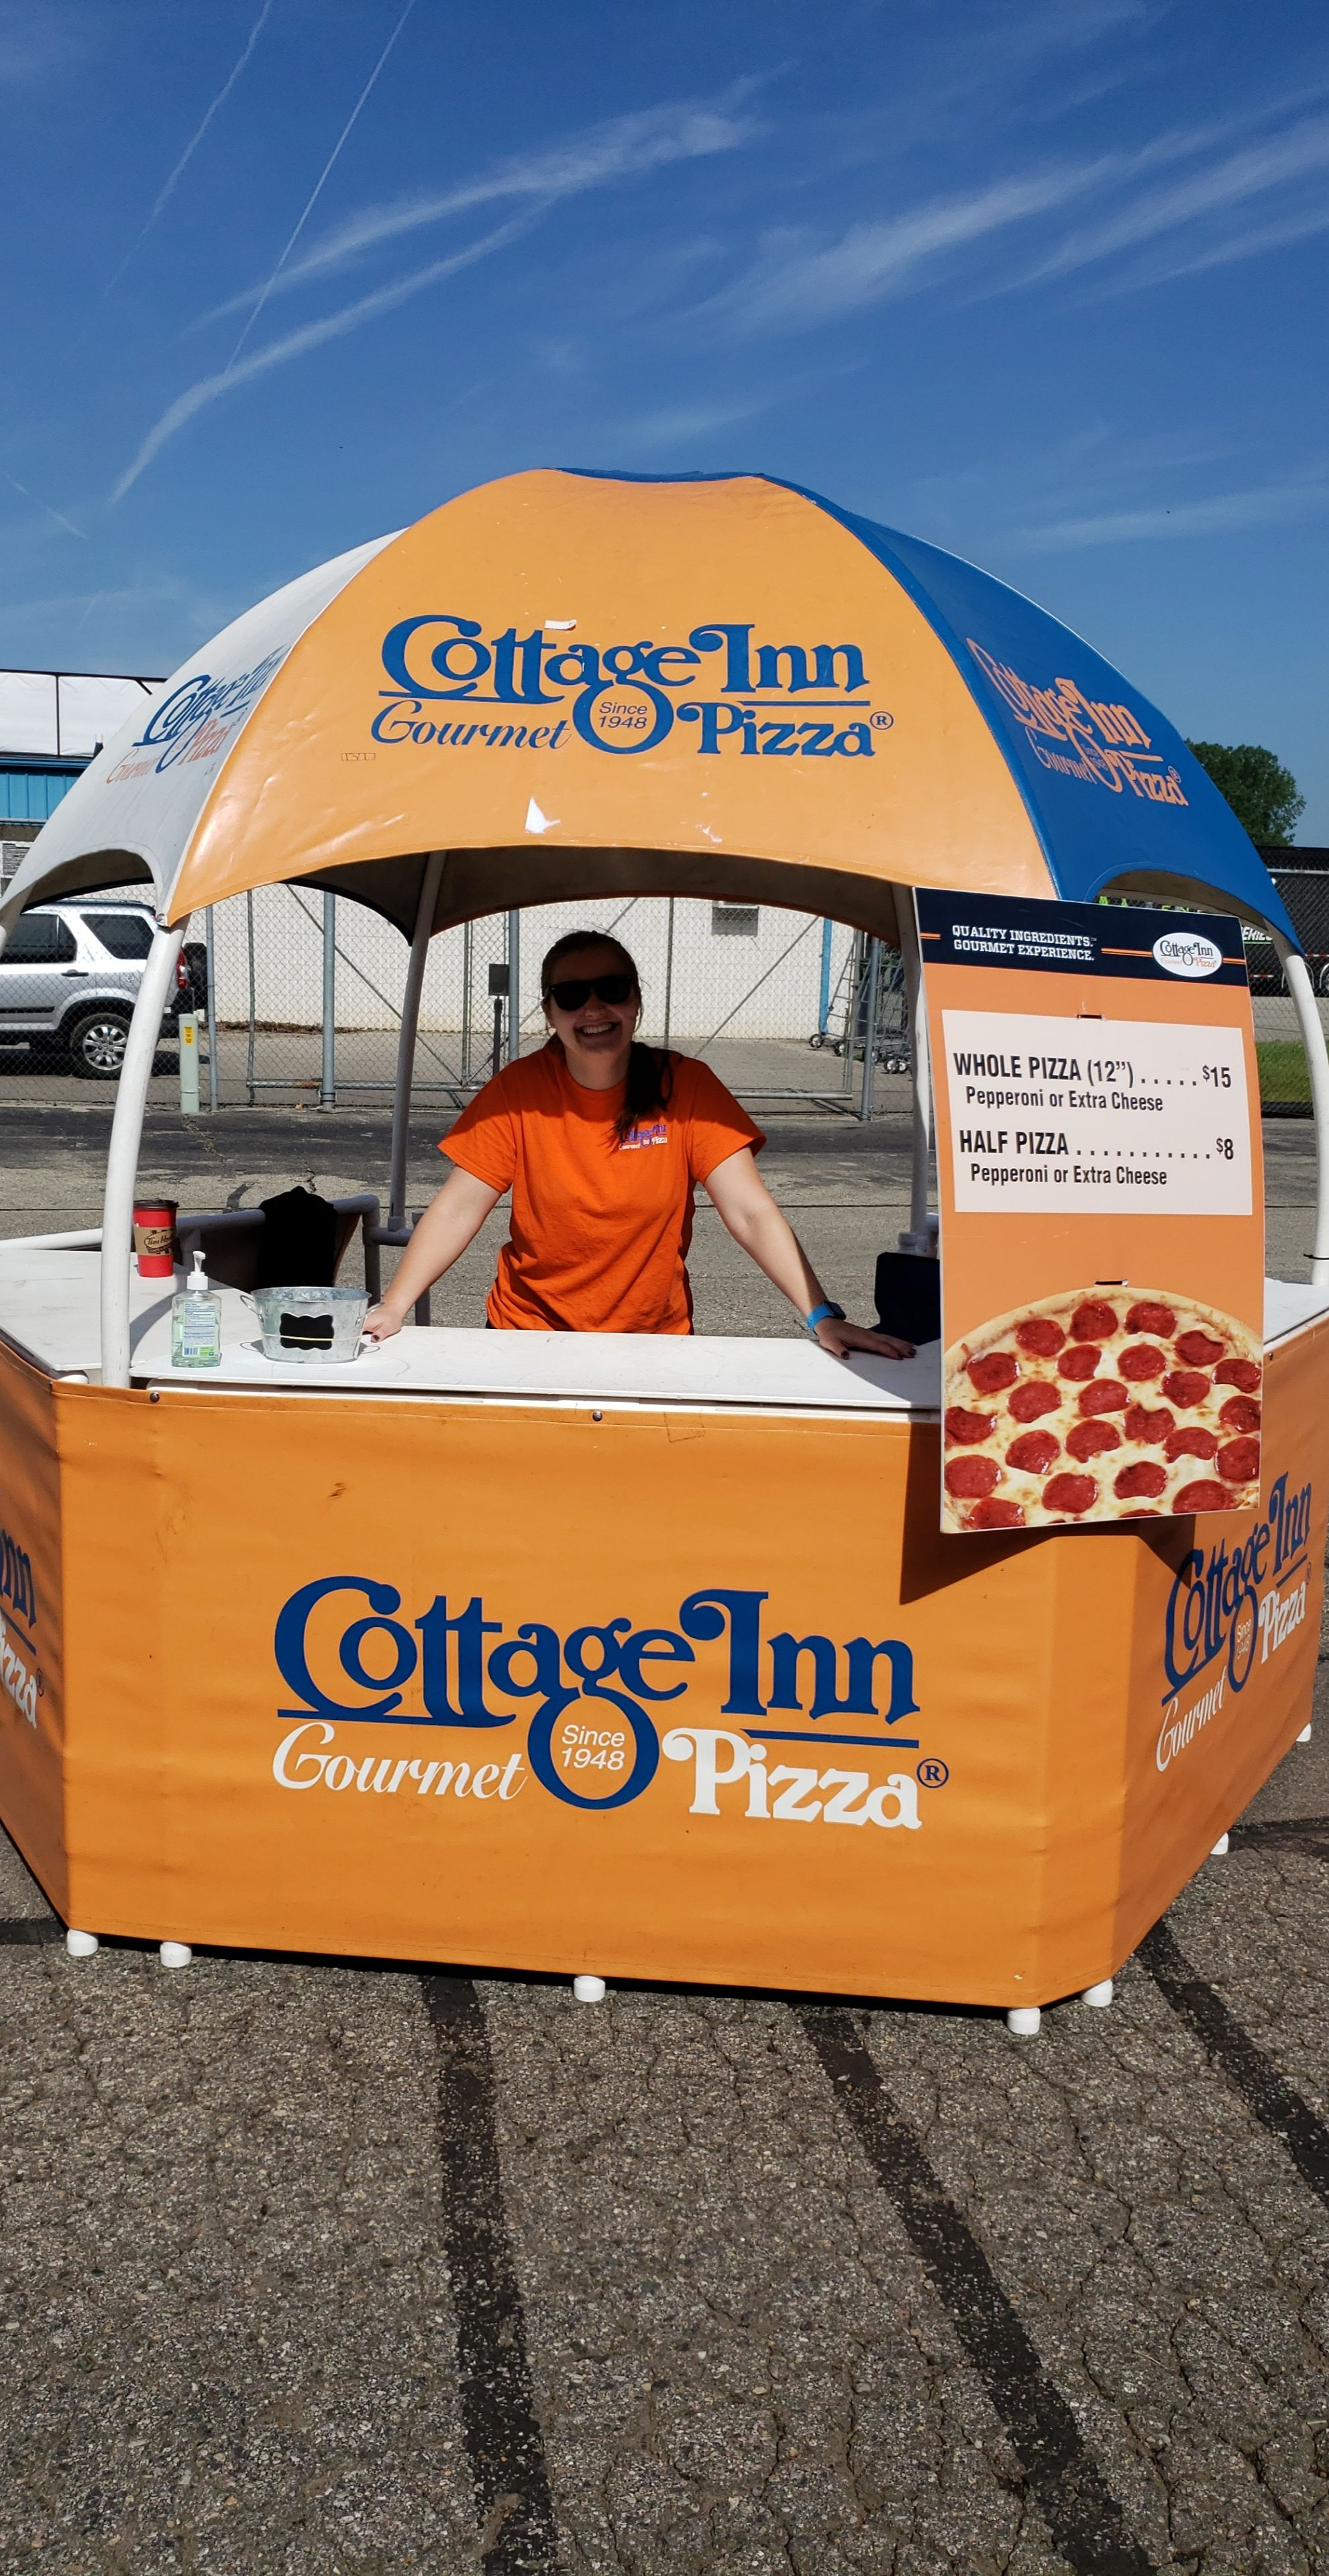 Cottage Inn Pizza at the Michigan International Speedway